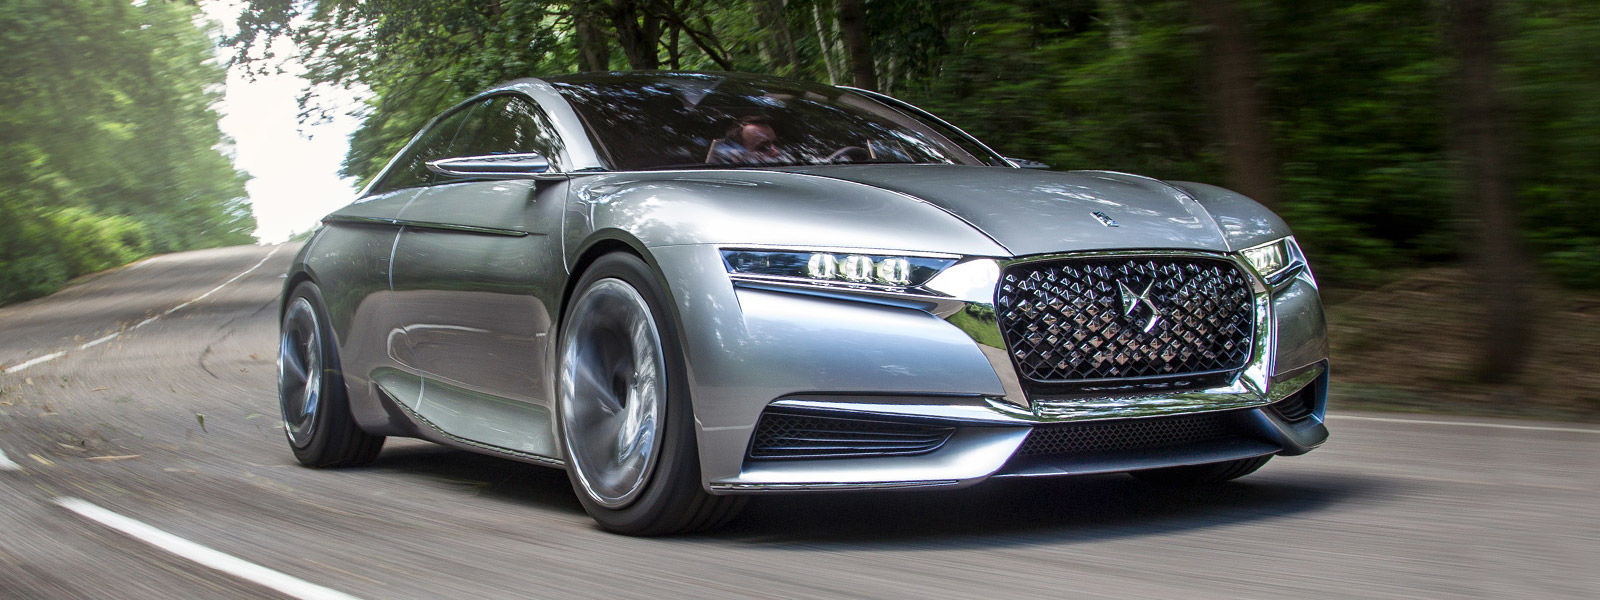 Could the new citroen c5 be an suv carwow